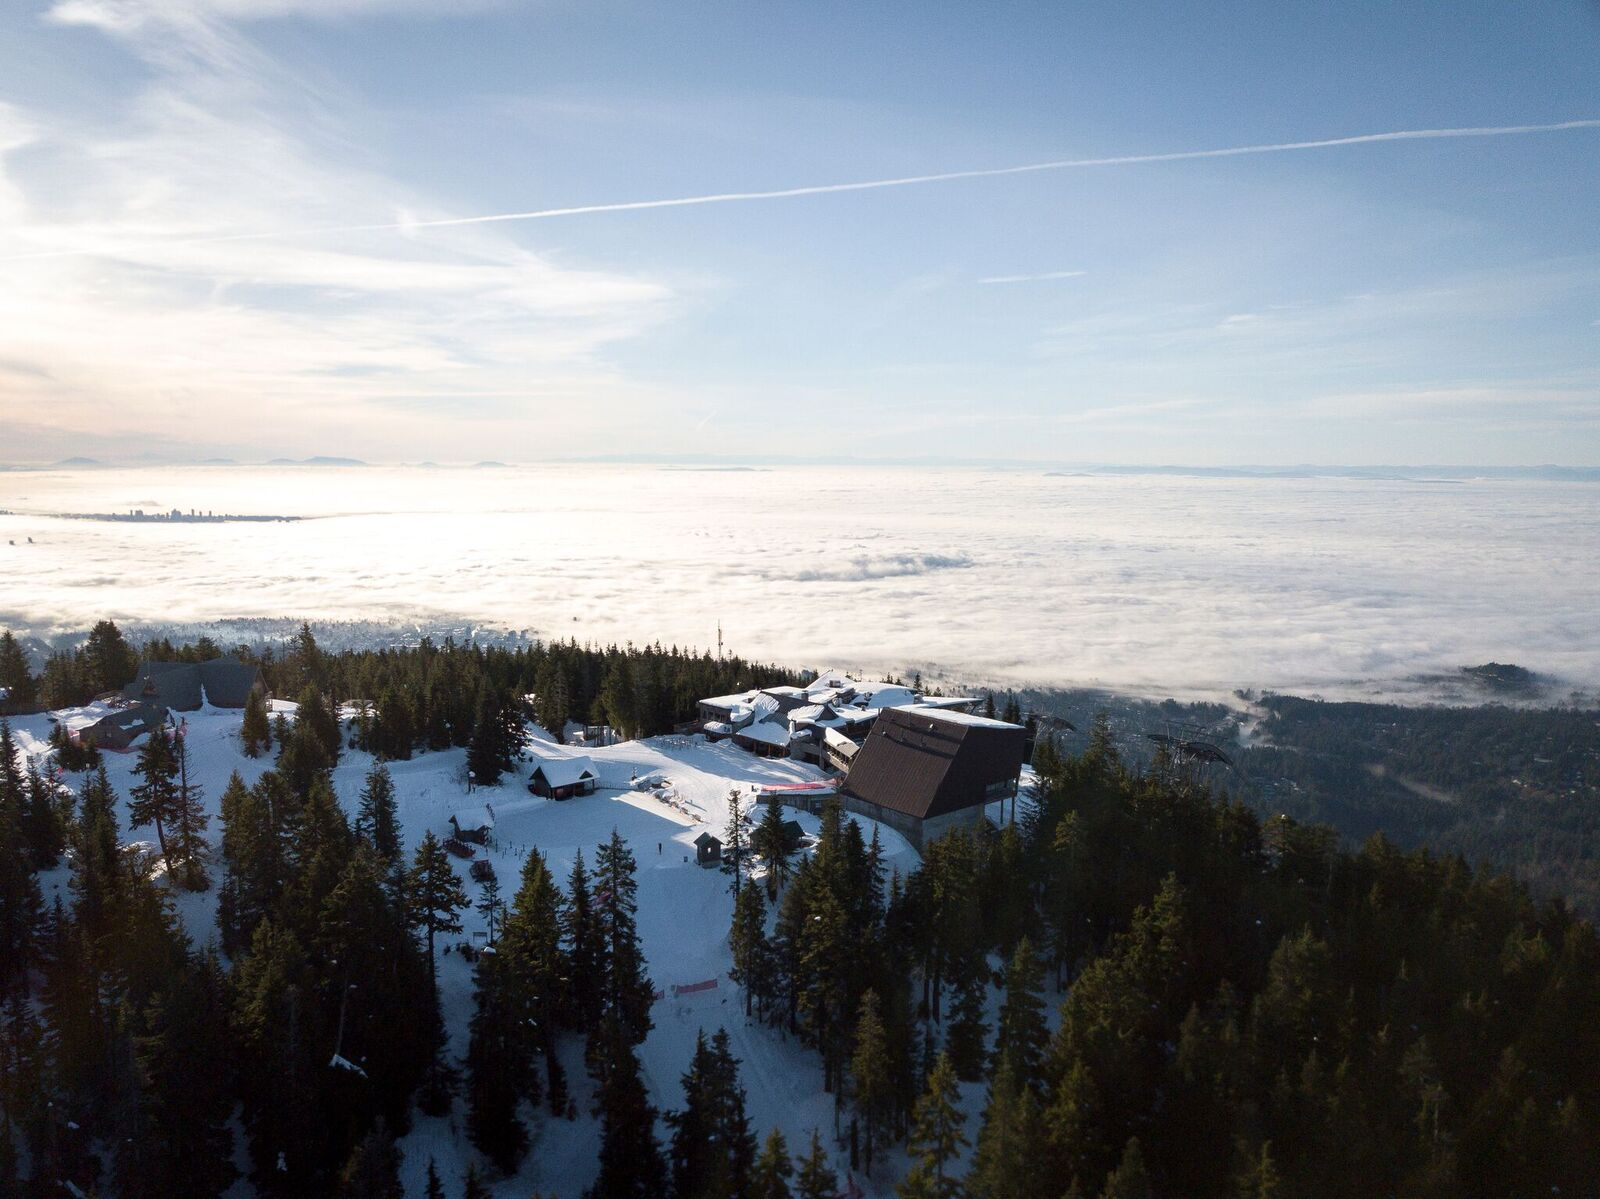 Above the fog at Grouse Mountain (Grouse Mountain Resorts)